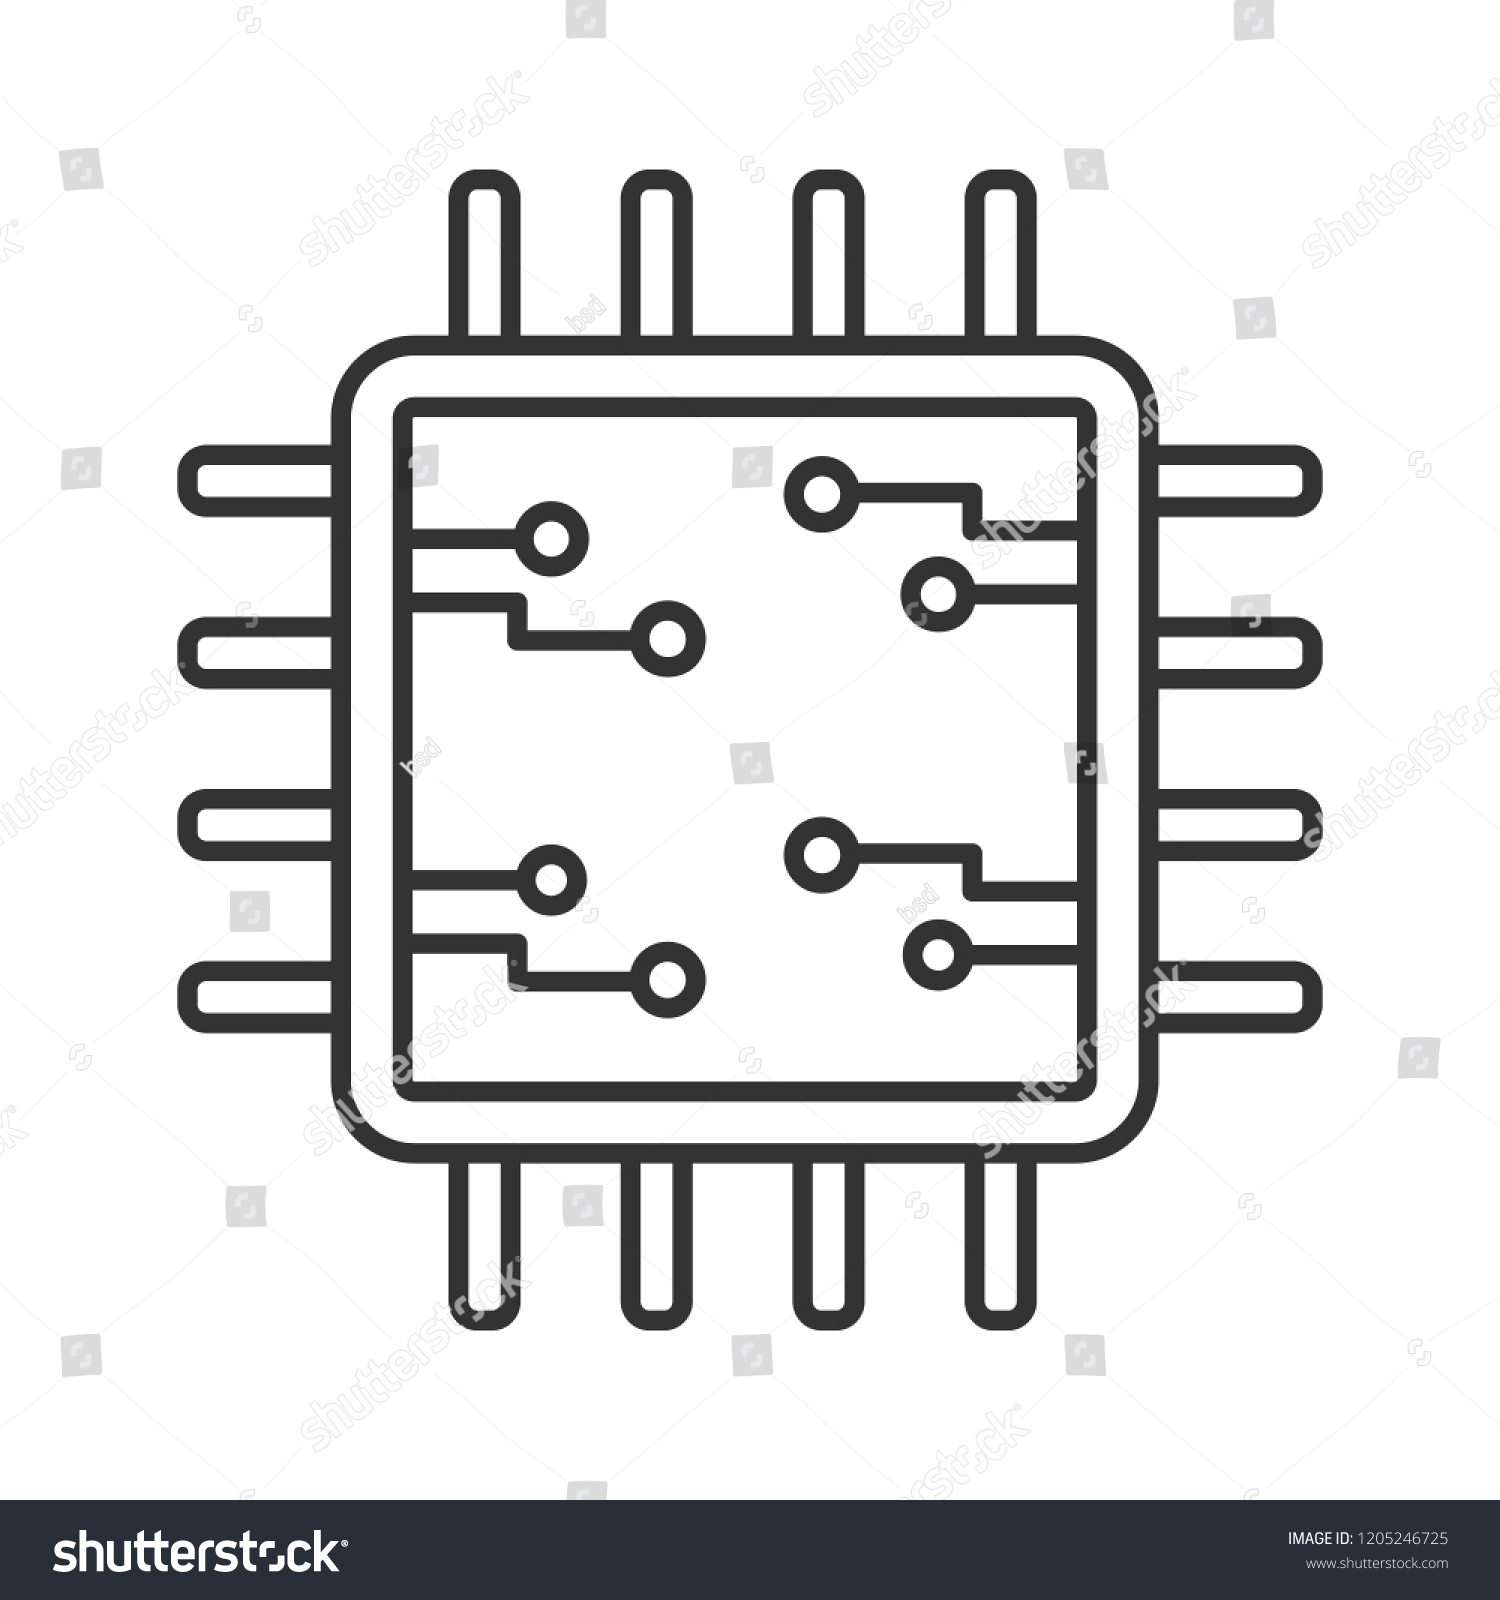 Processor Electronic Circuits Linear Icon Microprocessor Stock Integrated Circuit Chip Royalty Free Image With Microcircuits Microchip Chipset